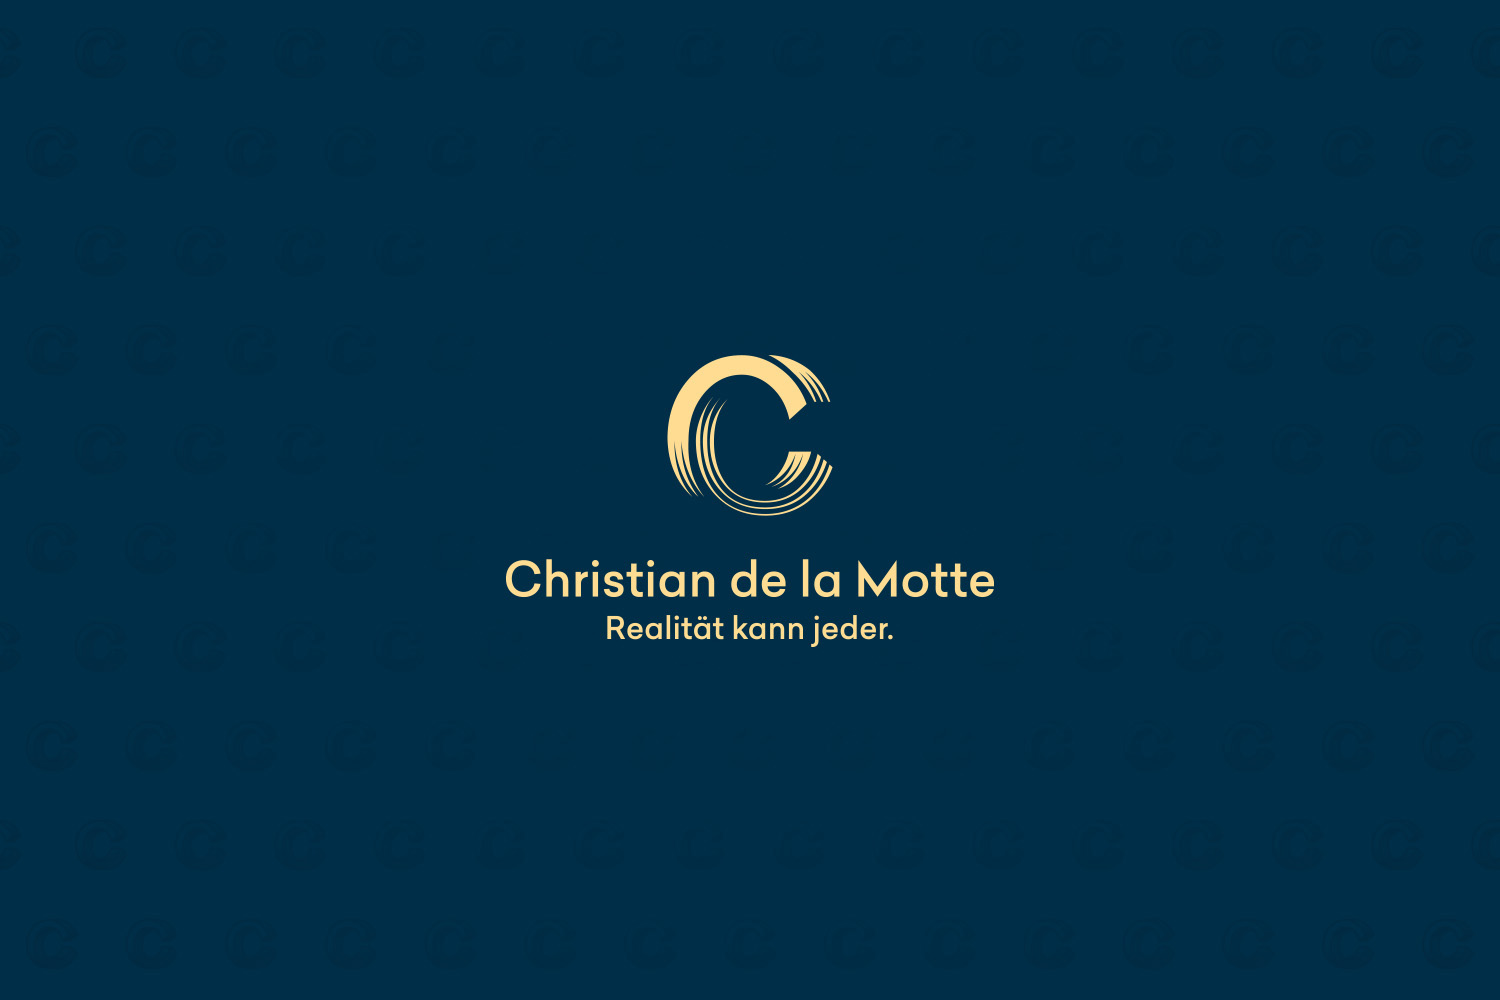 Corporate Design Potsdam Christian de la Motte Logo